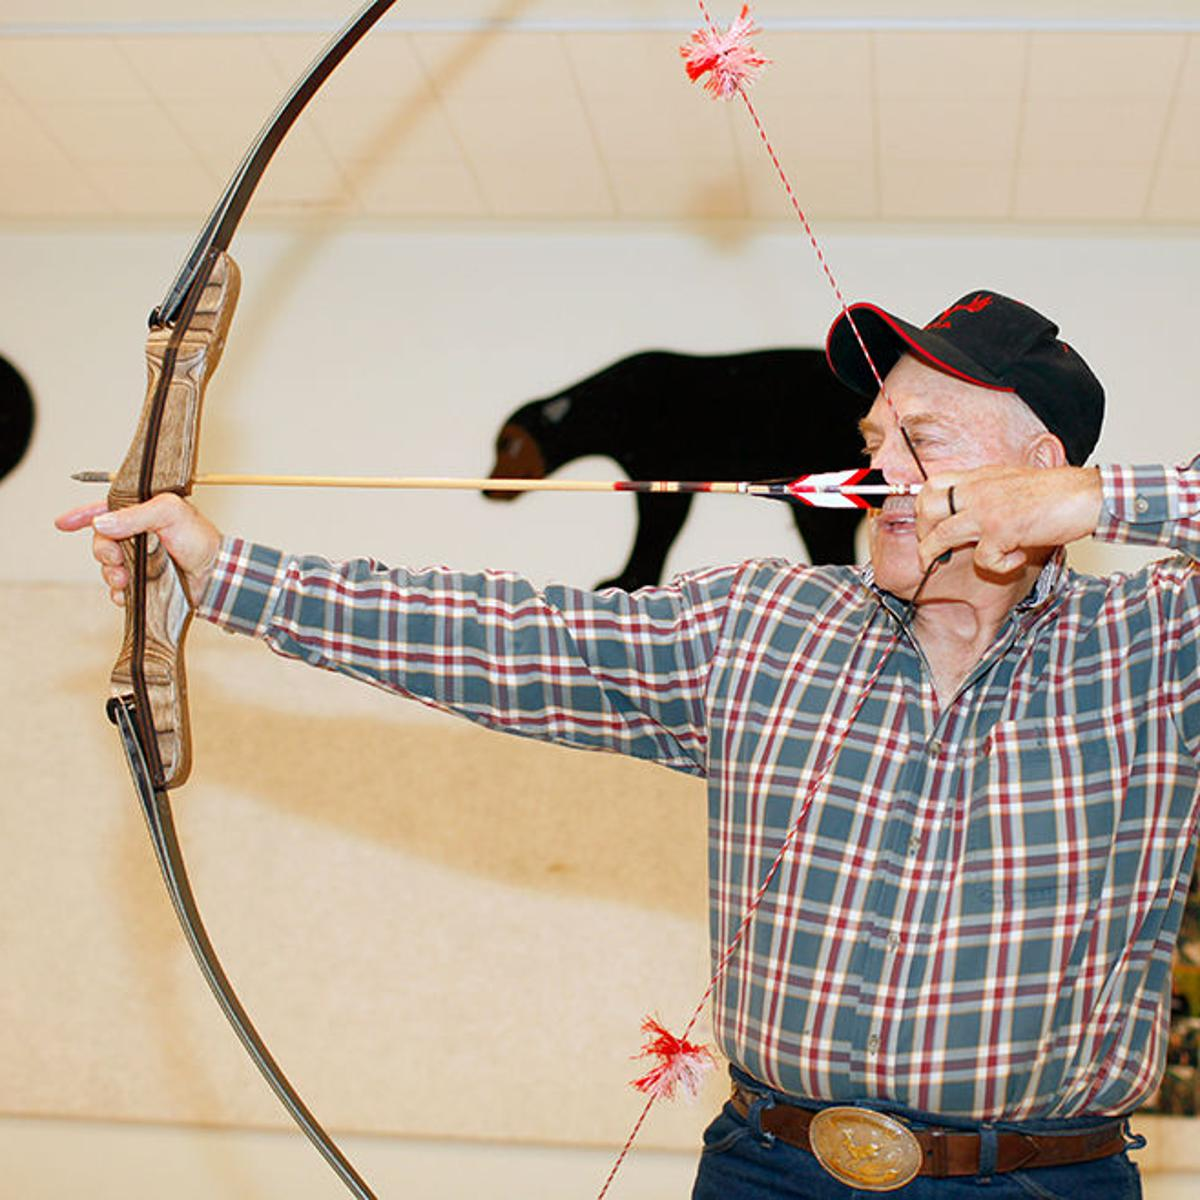 Jim Cox Archery draws everyone from hard-core hunters to curious